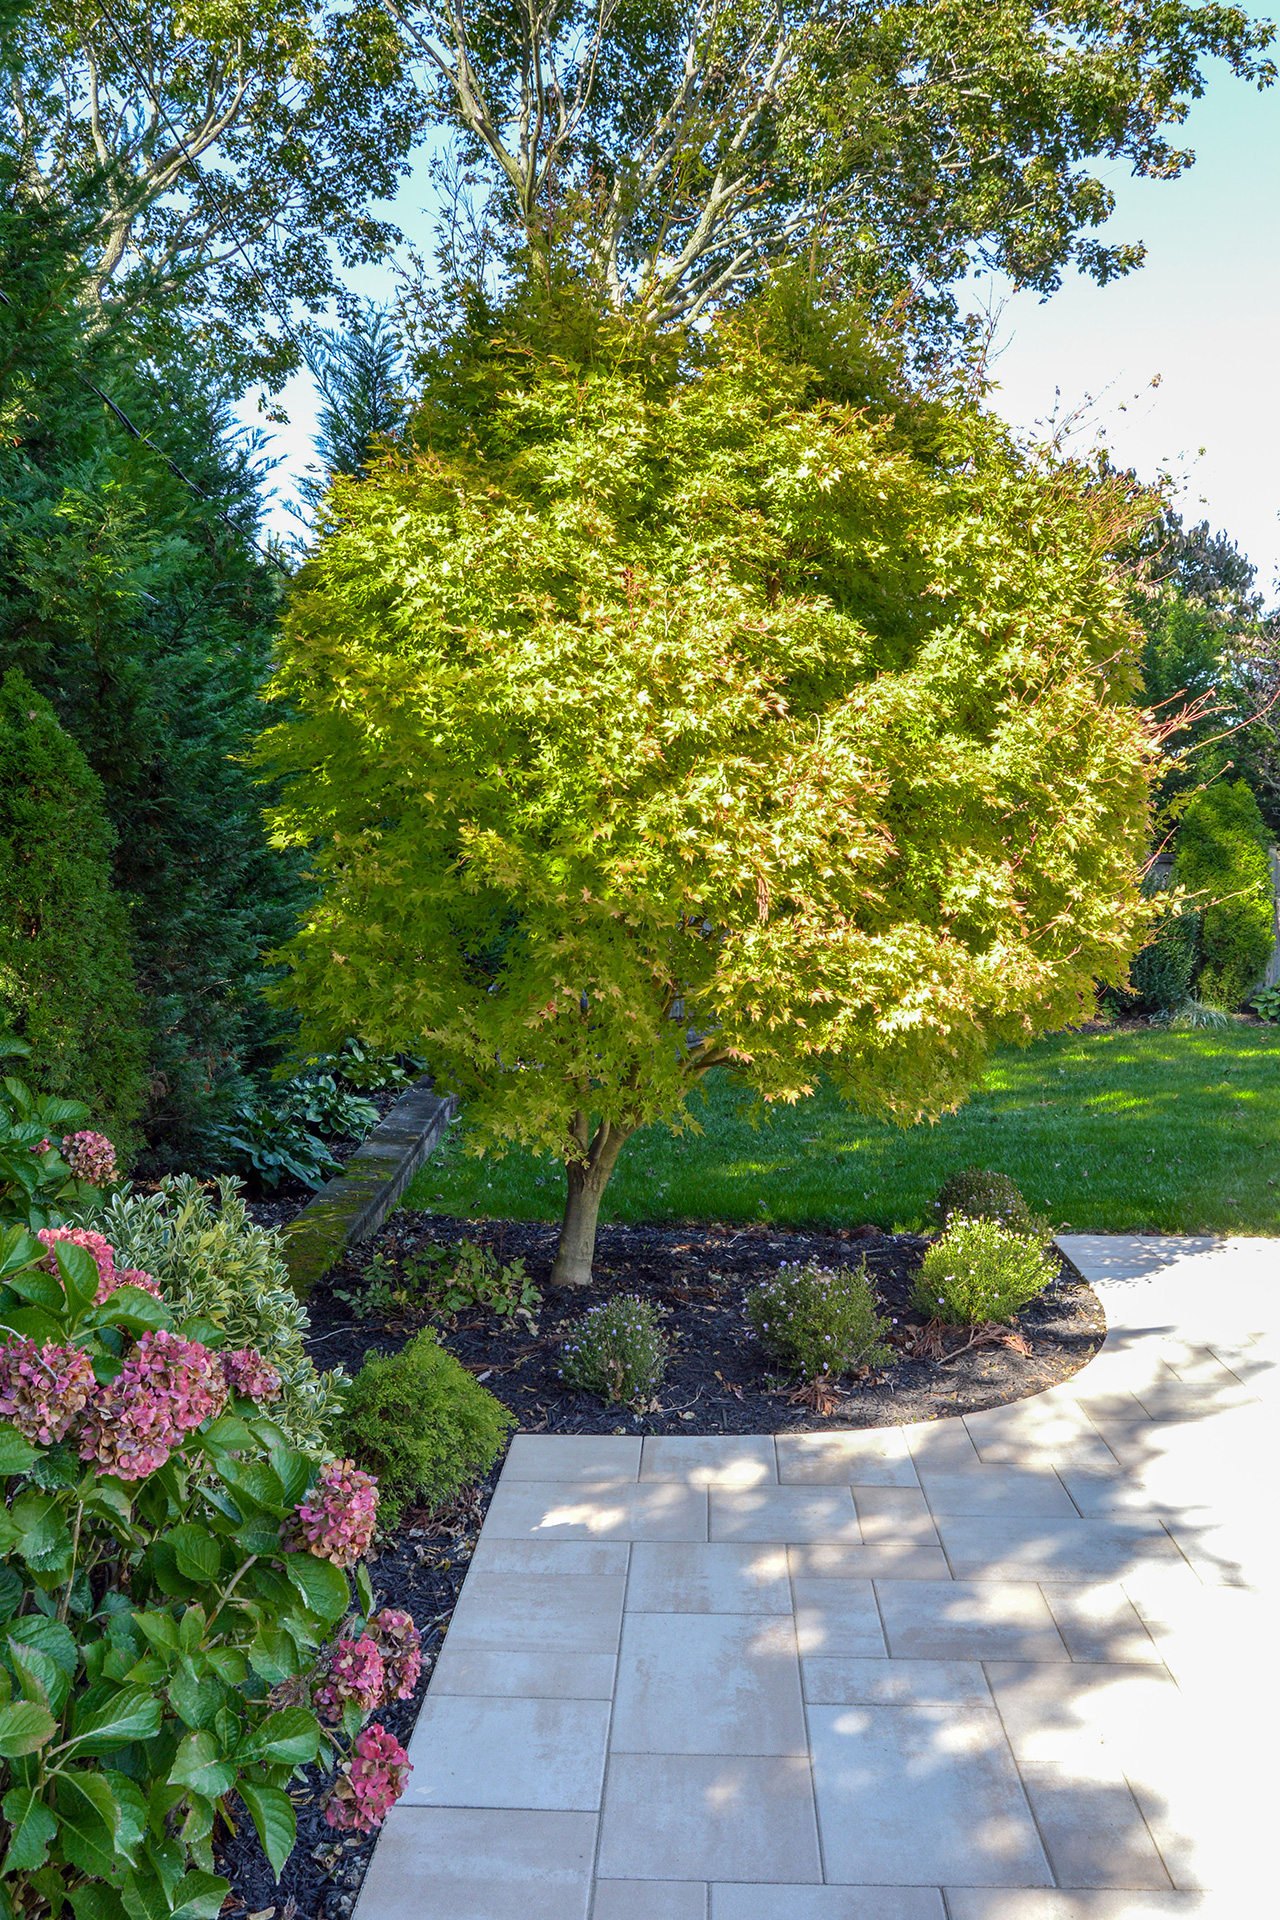 Plantings and shrubs in Long Island, NY